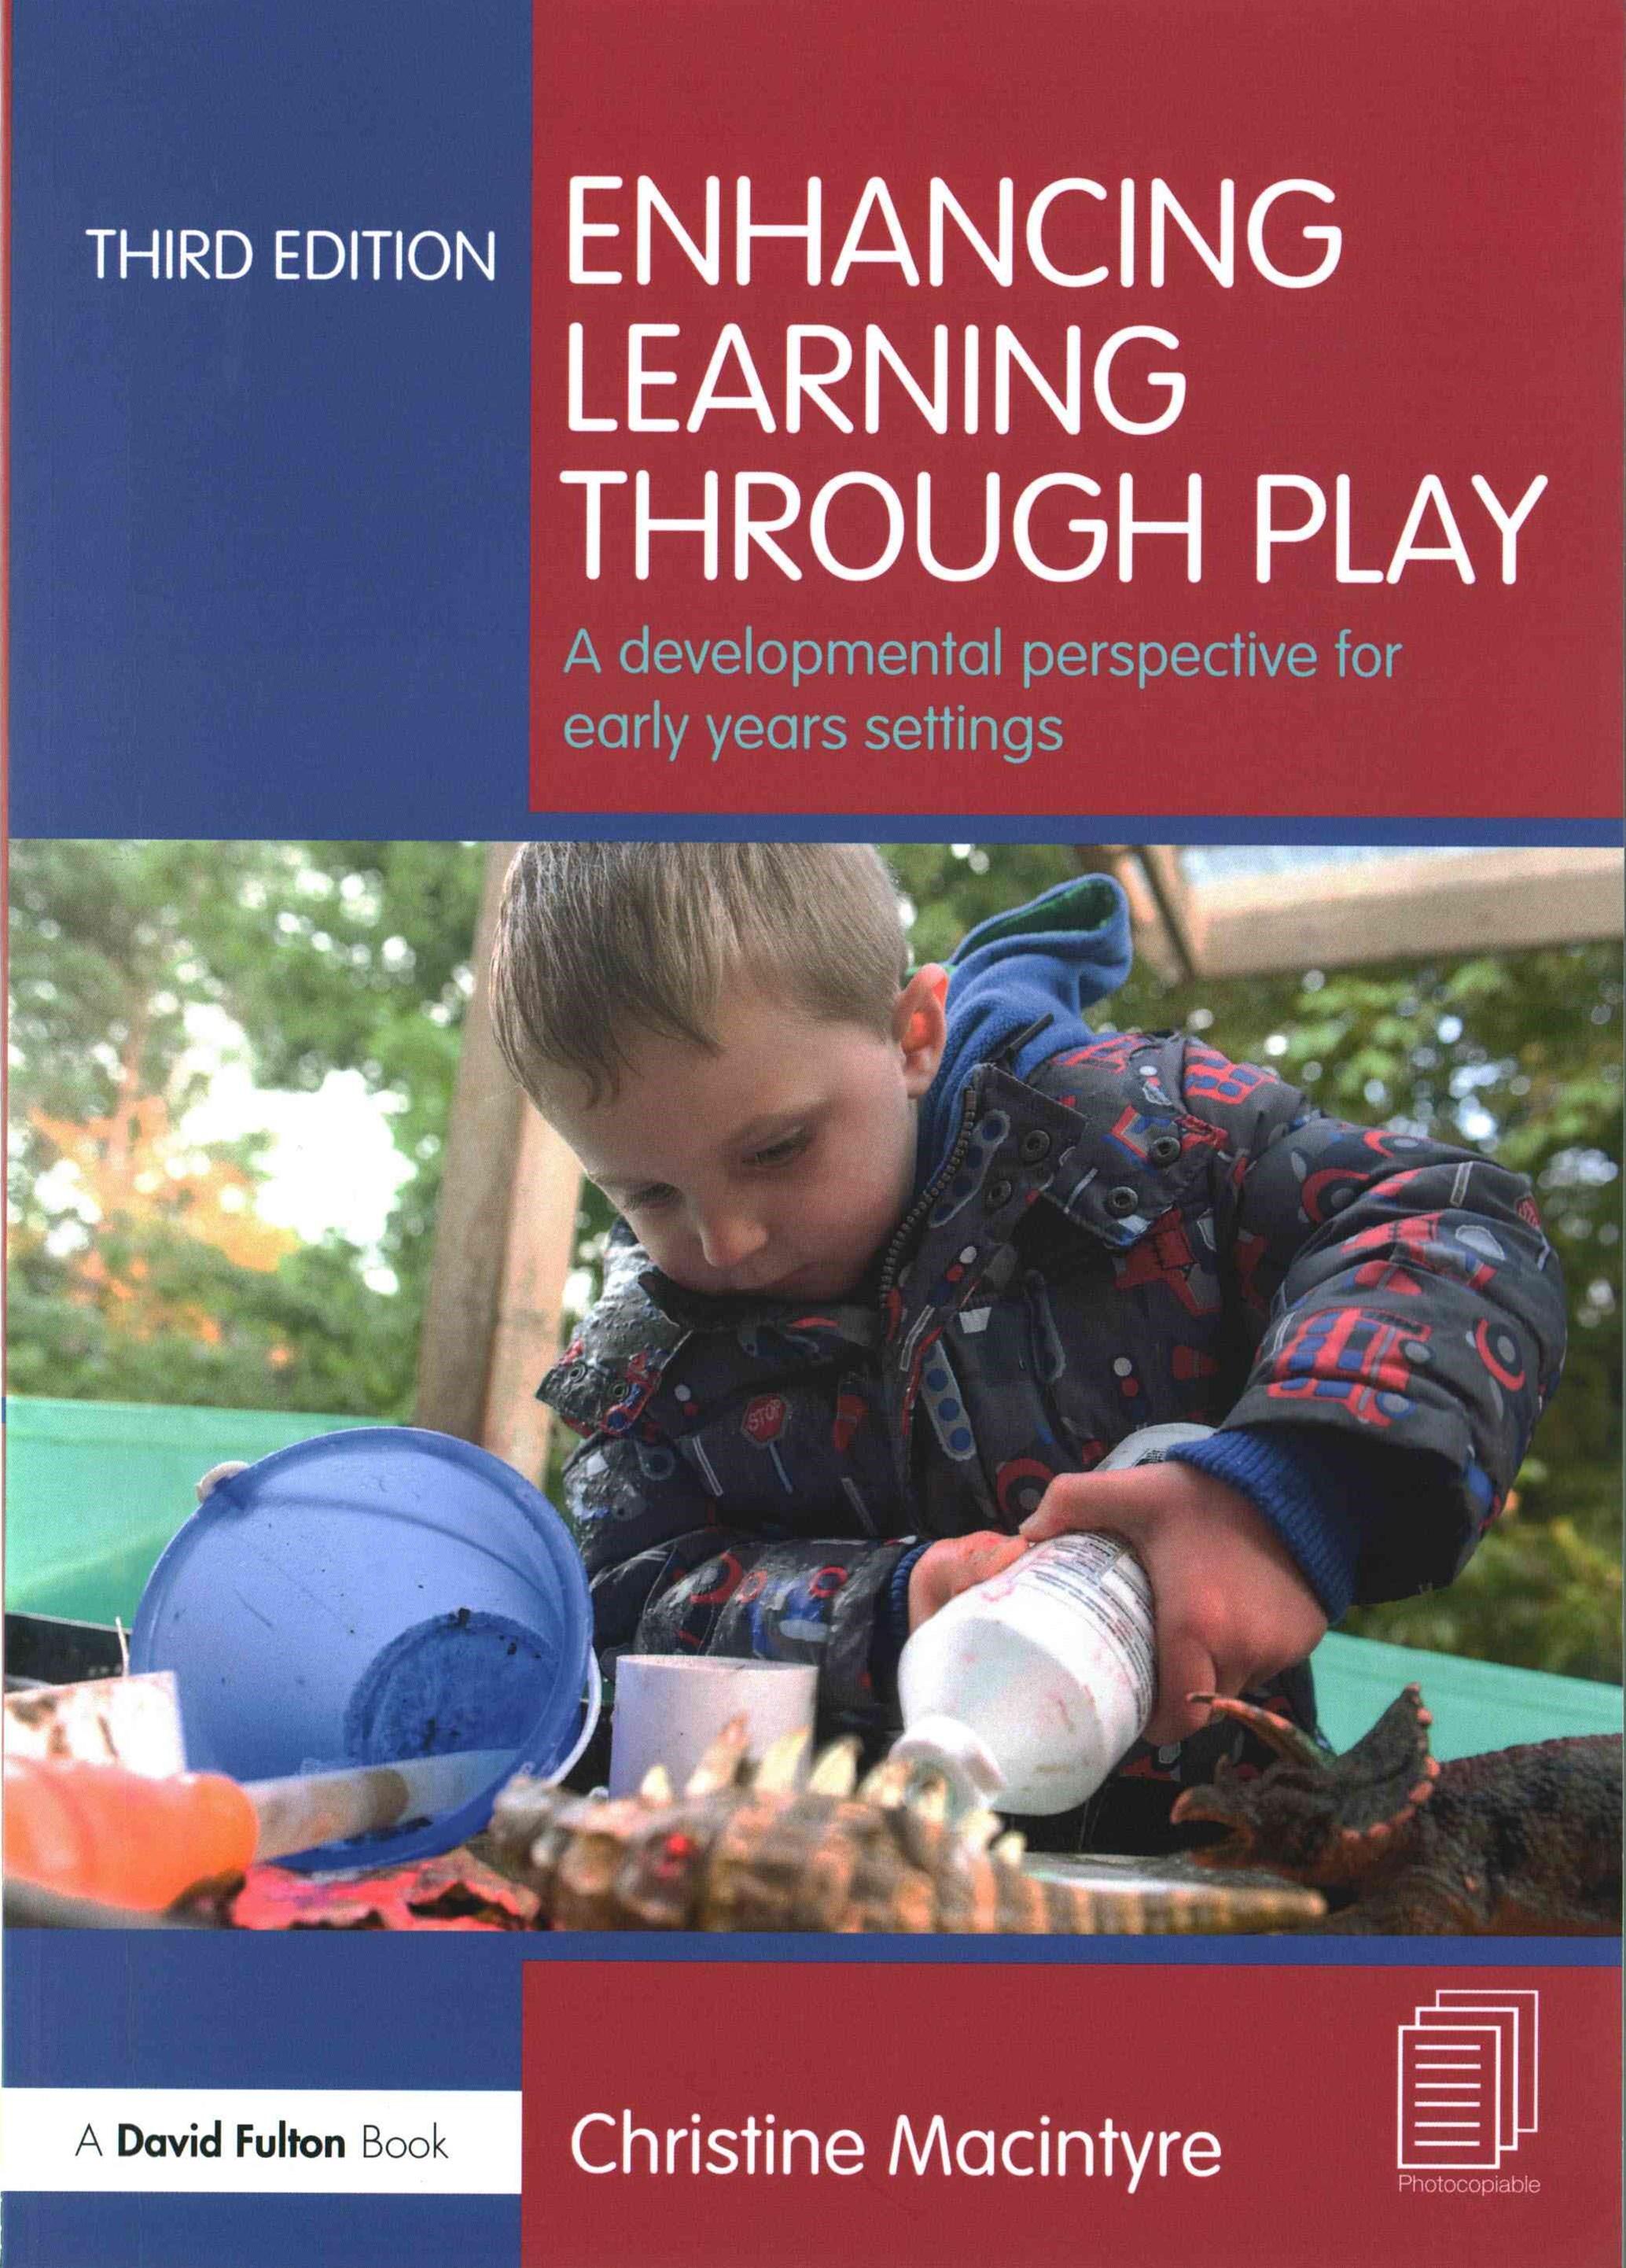 Enhancing Learning Through Play